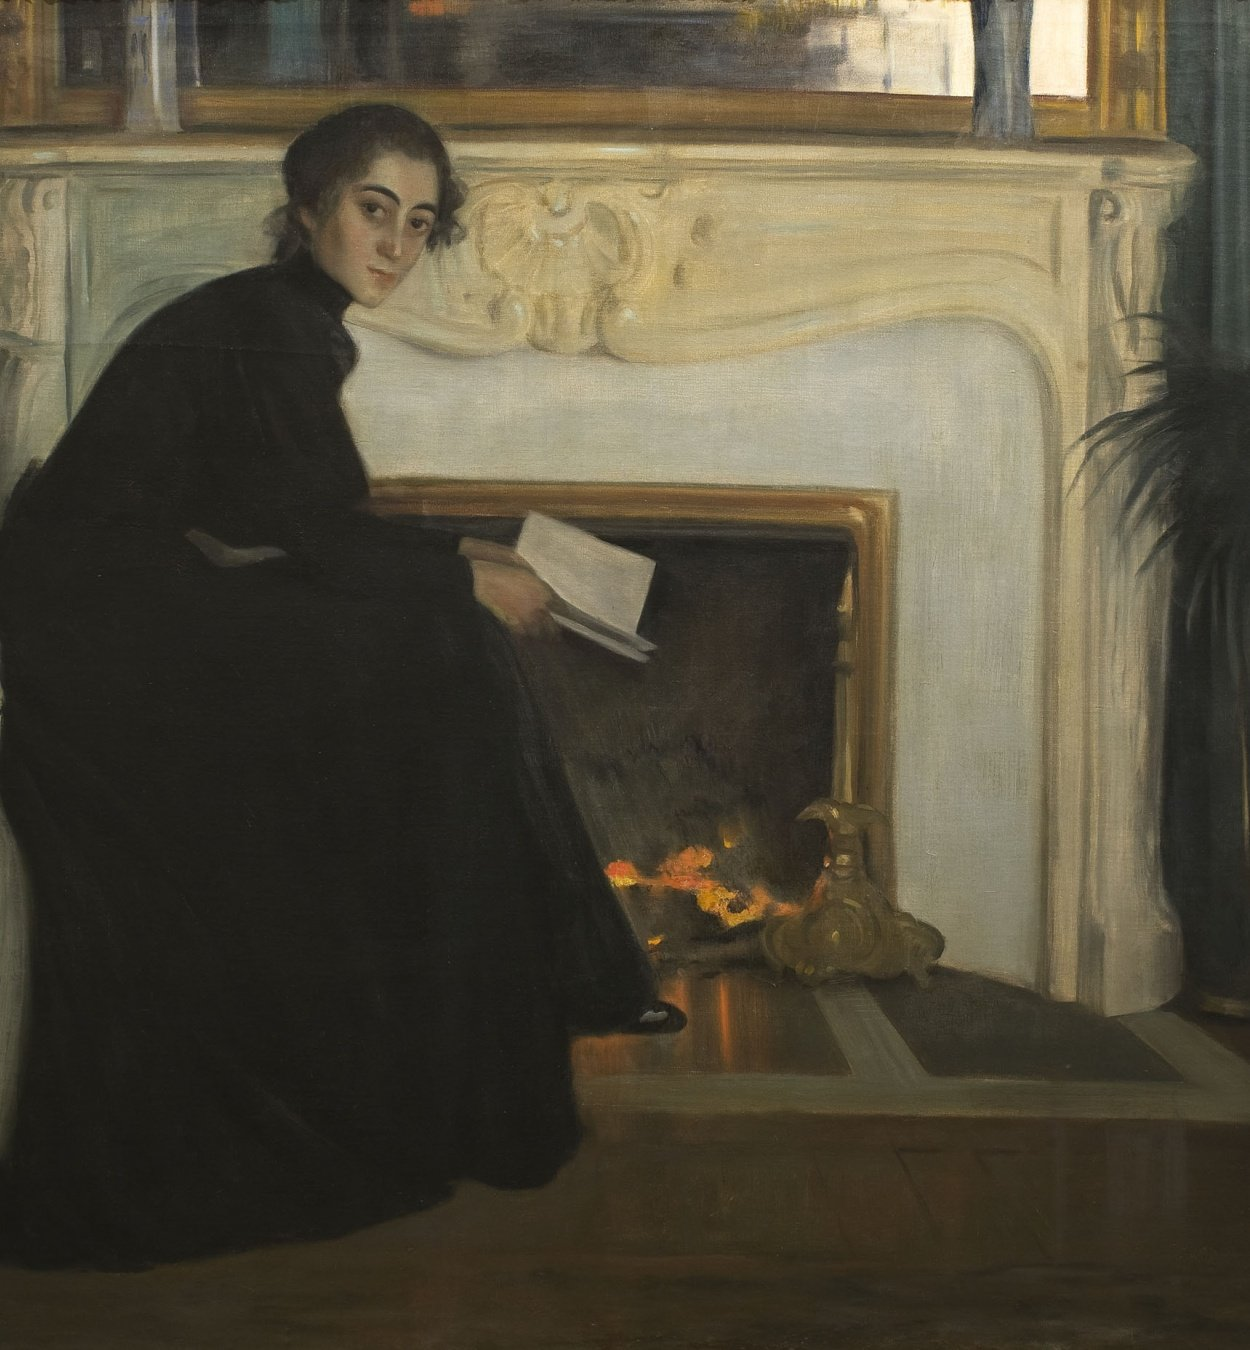 Santiago Rusiñol - Romantic Novel - Paris, 1894